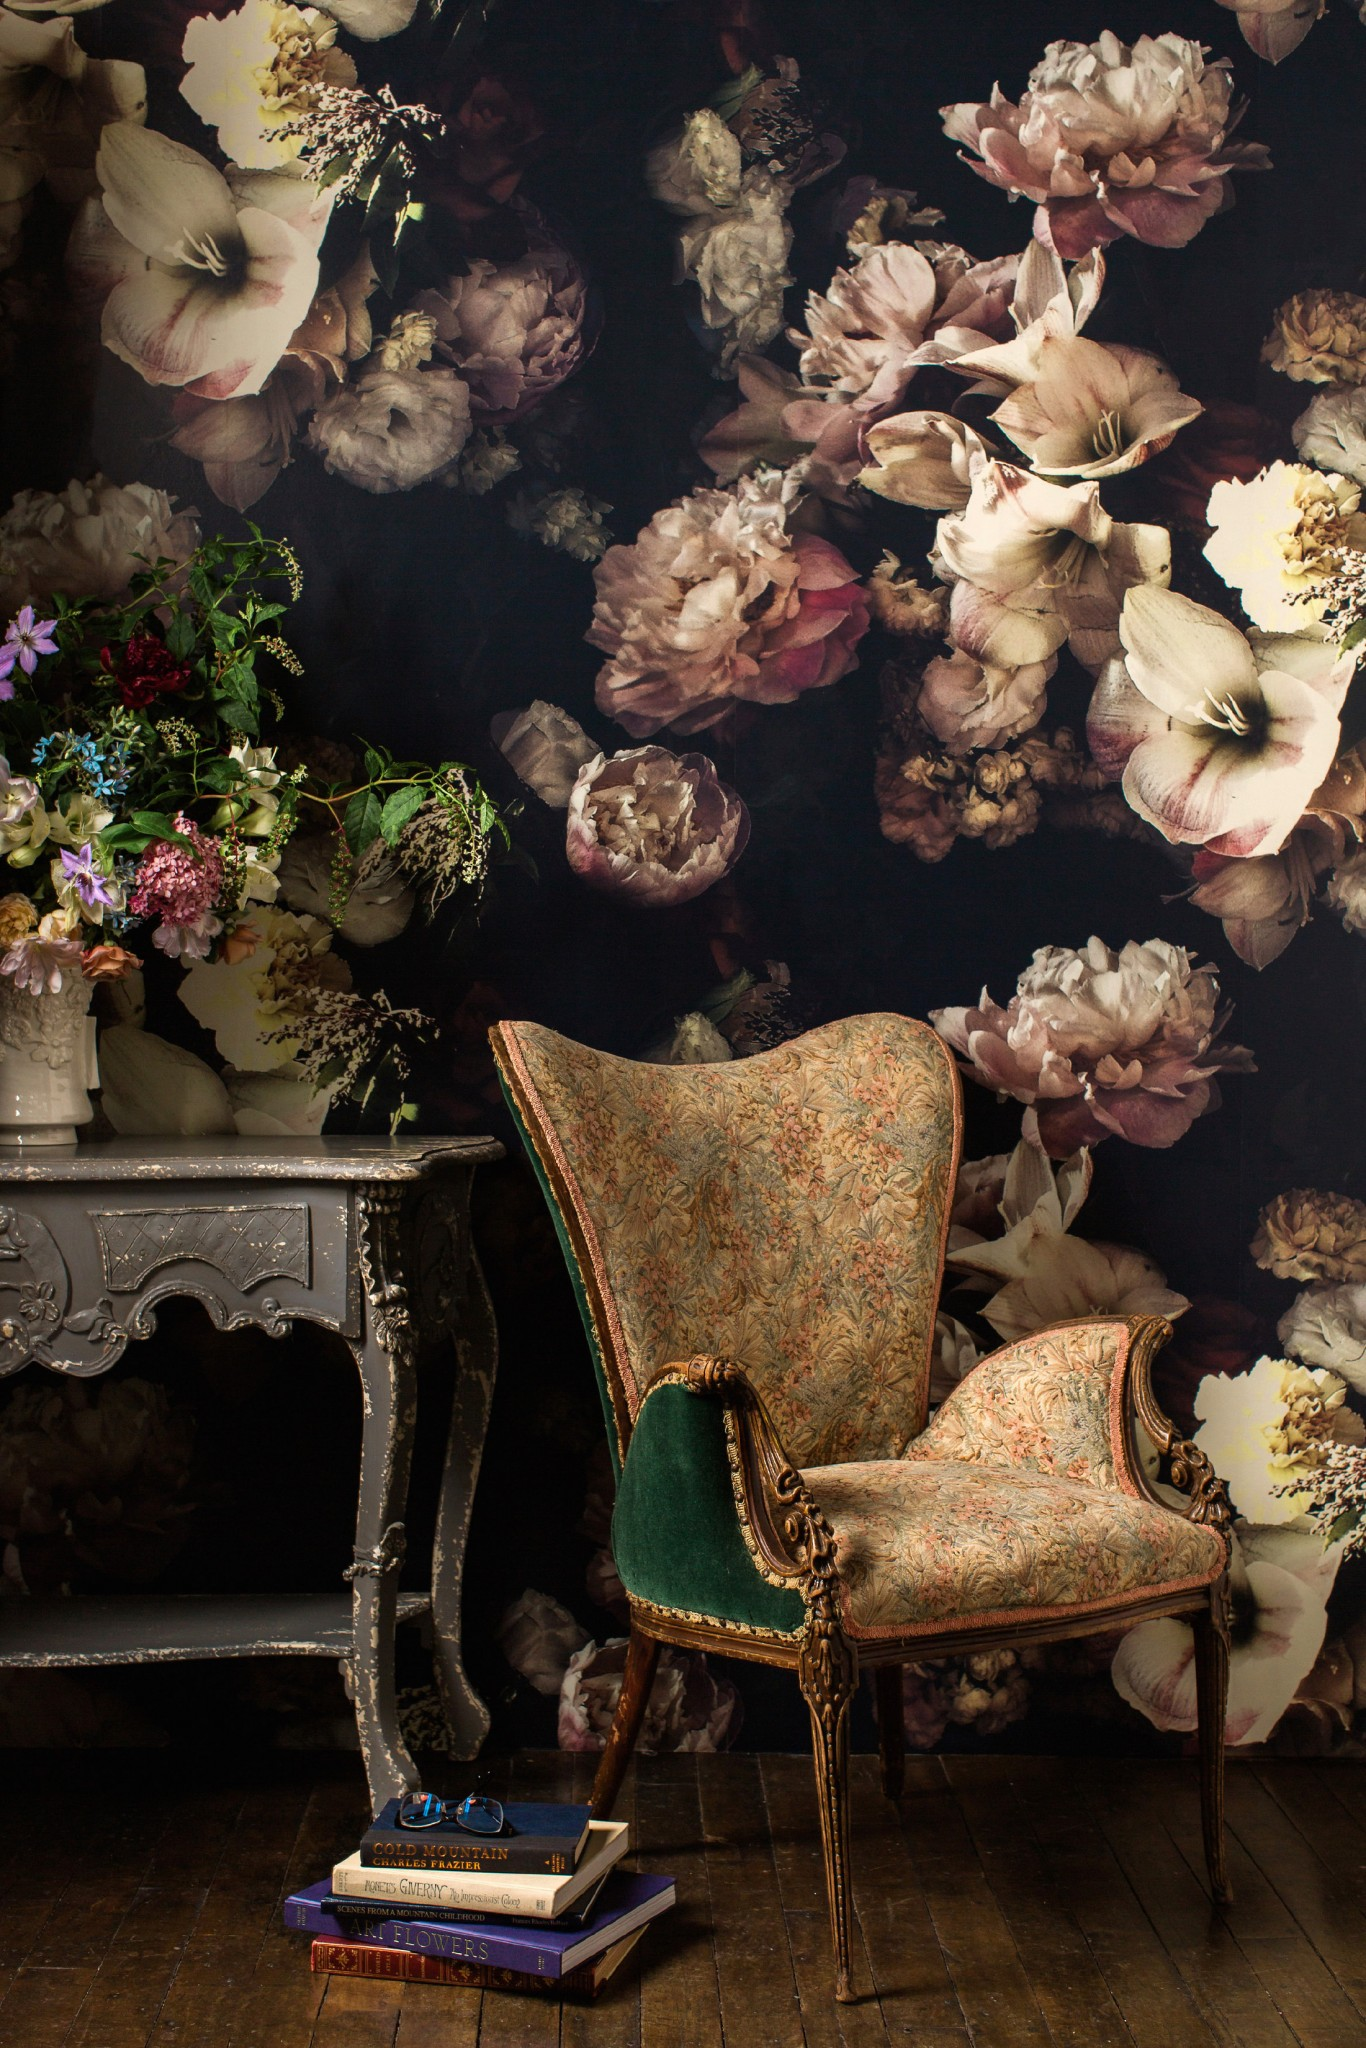 Ashley-Woodson-Bailey floral wallpaper embraces large stunning blooms